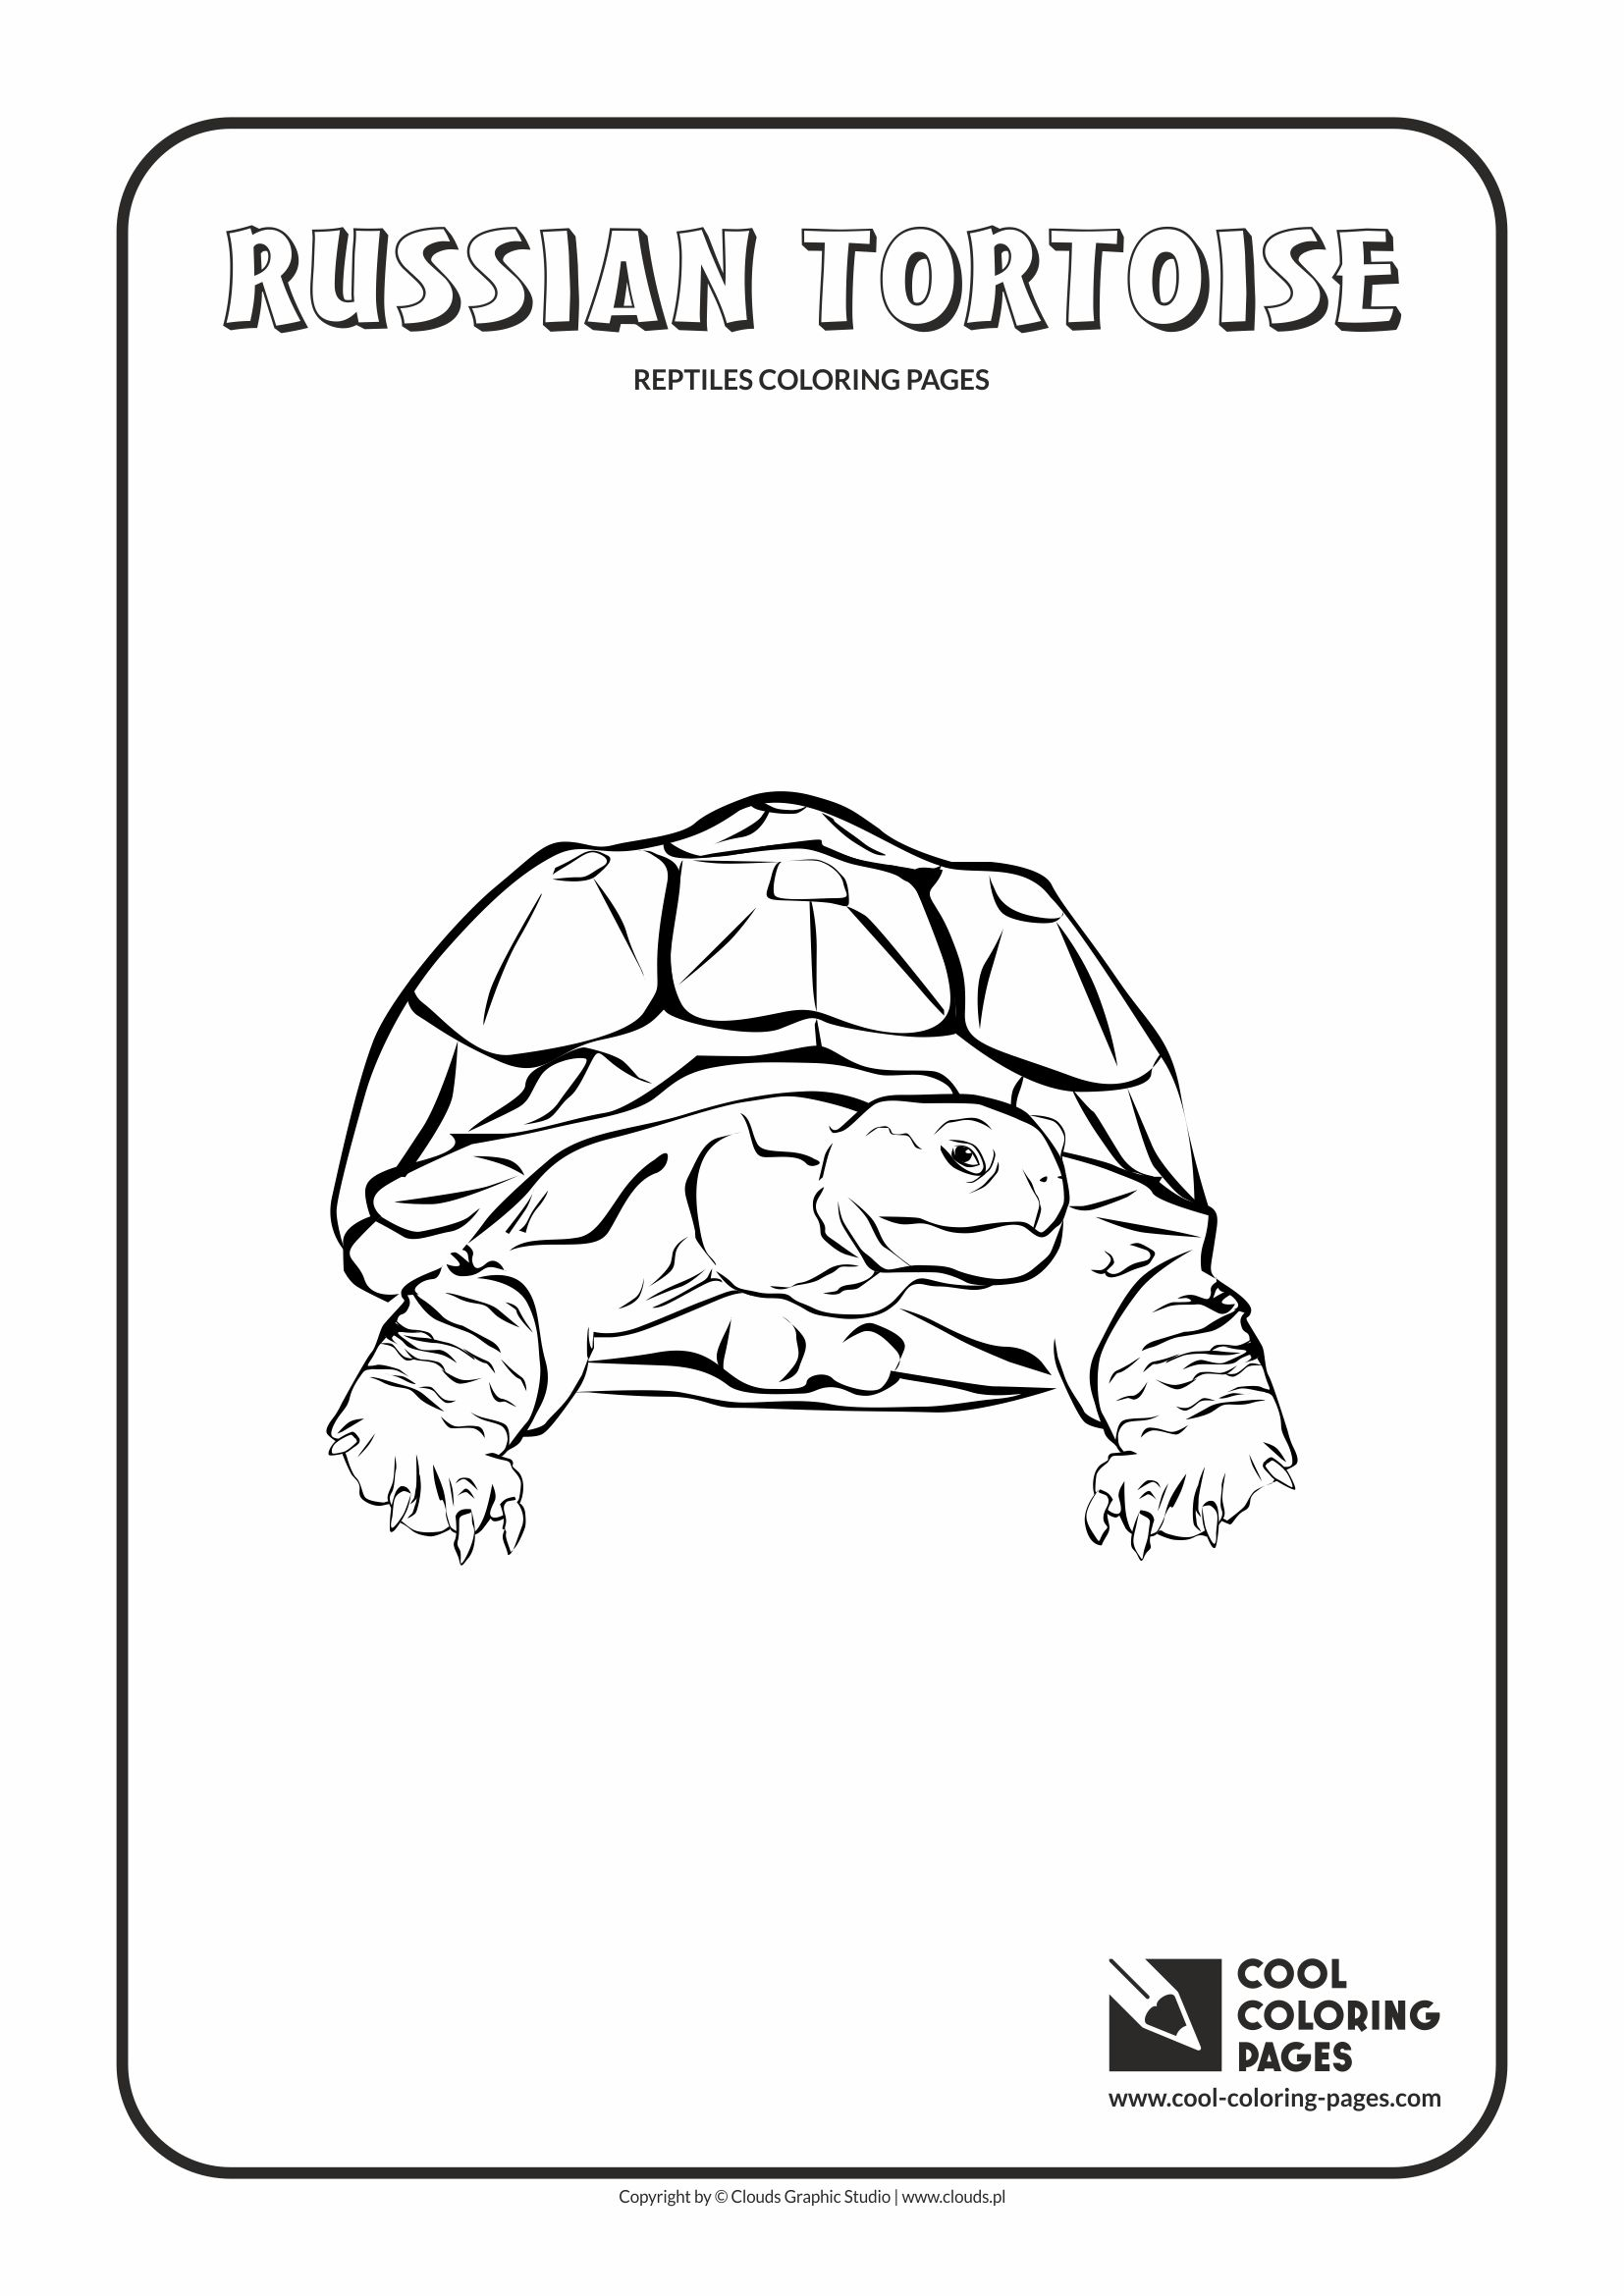 Russian Tortoise Coloring Pages | Coloring Pages